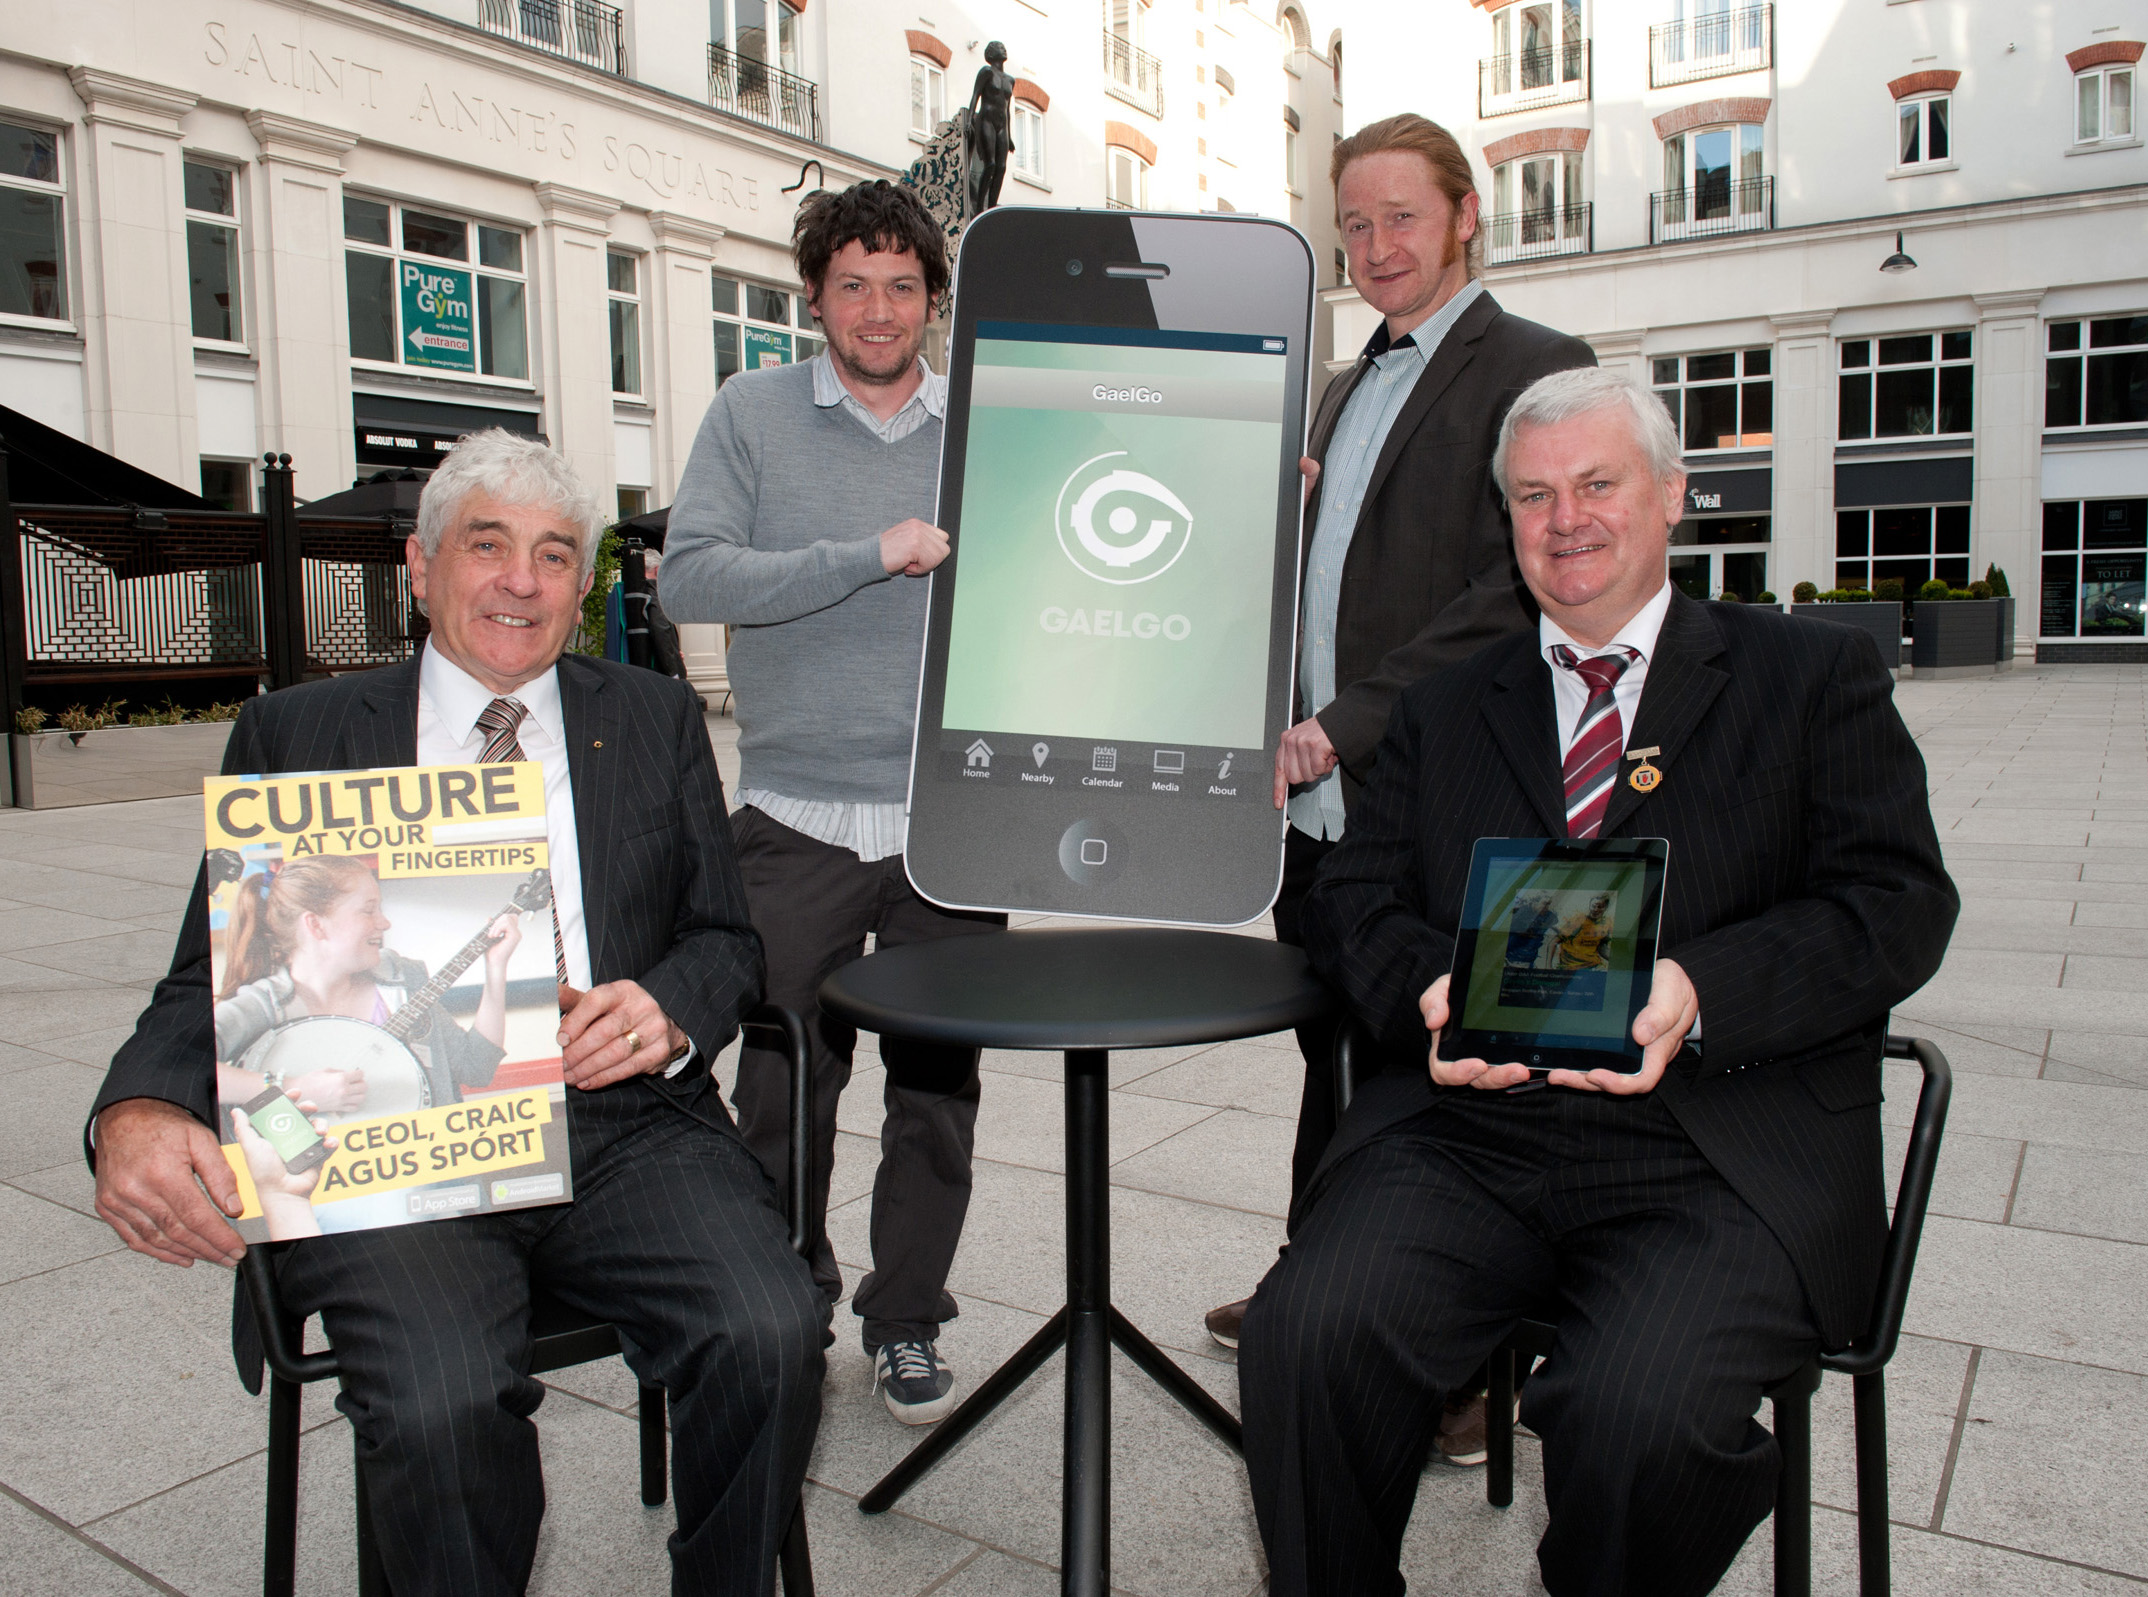 GaelGo App available to download